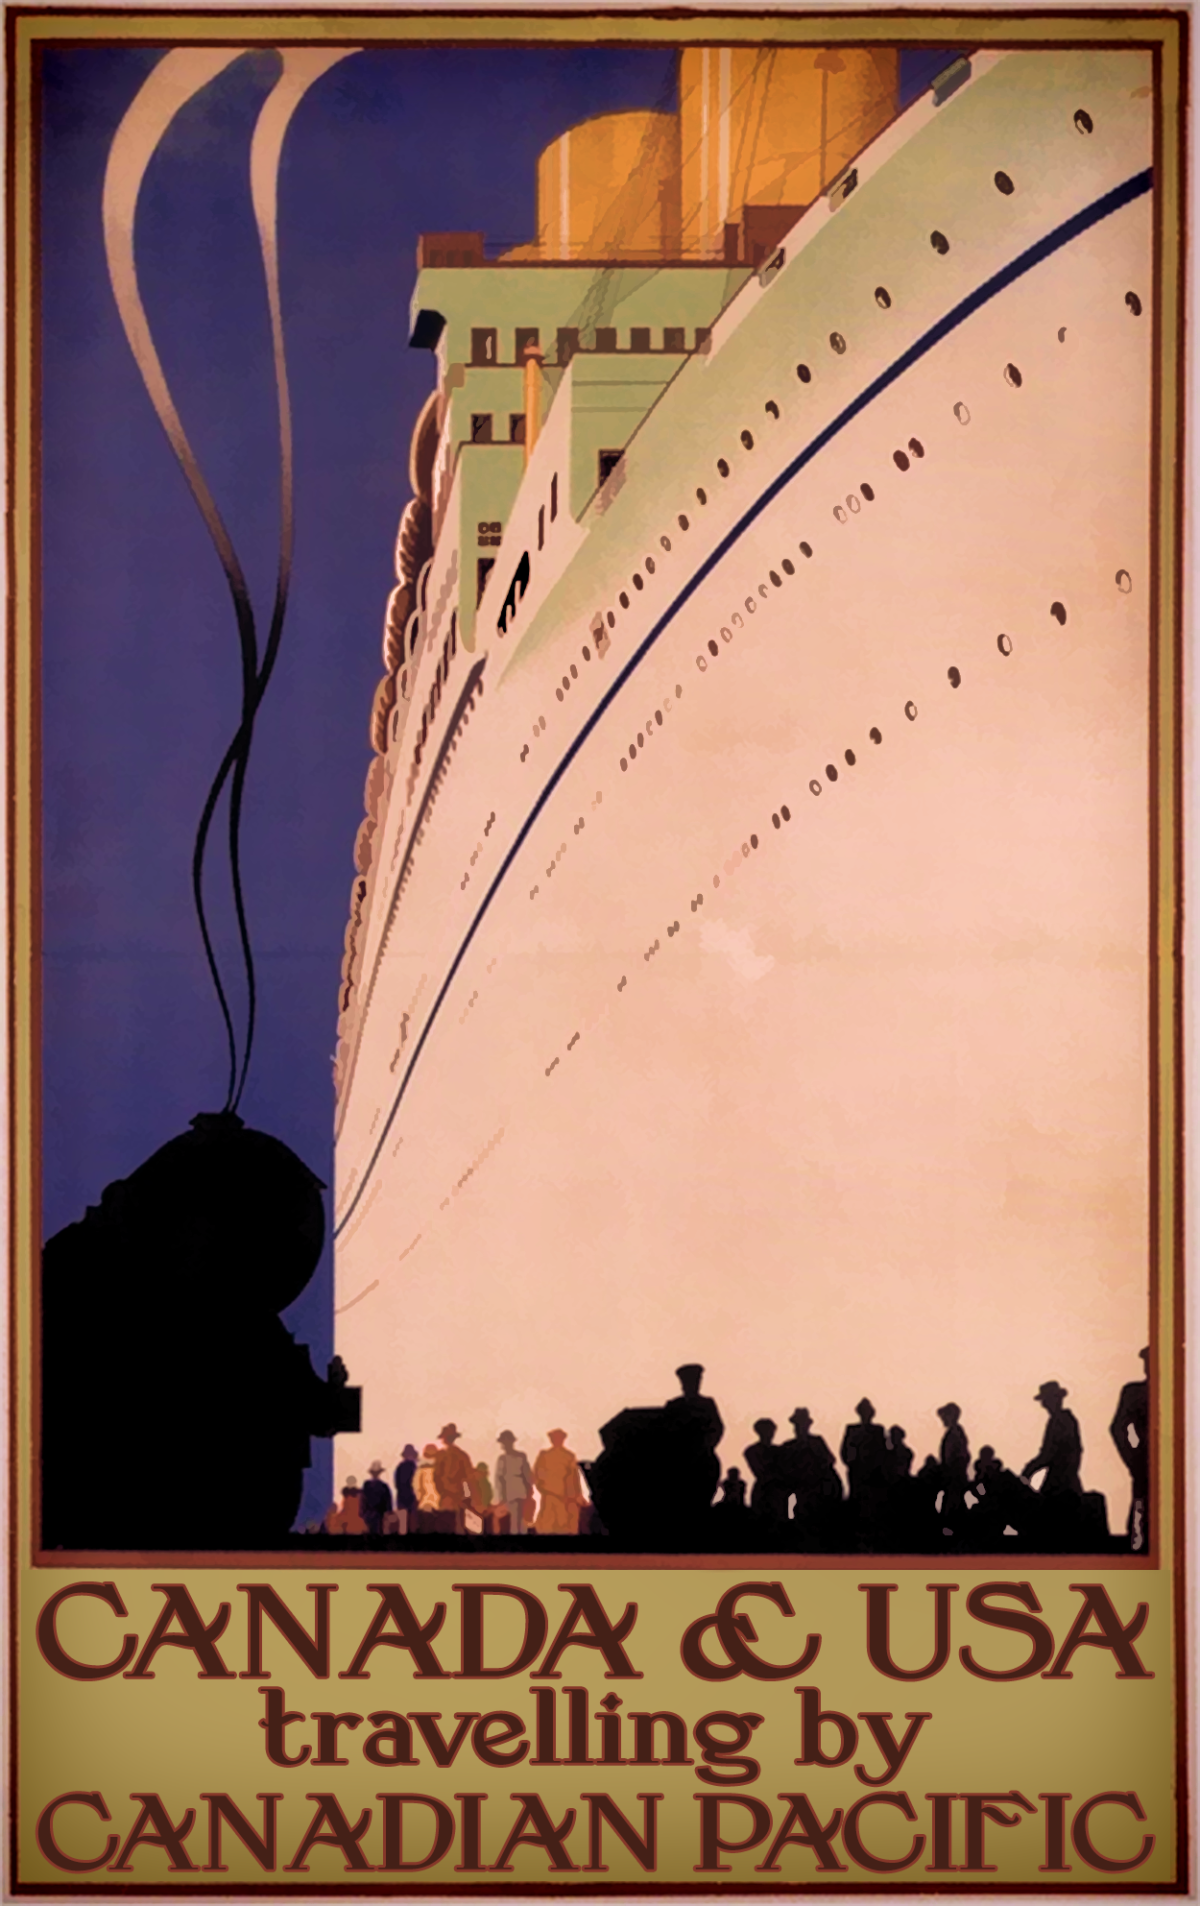 Canada & USA travelling by Canadian Pacific poster